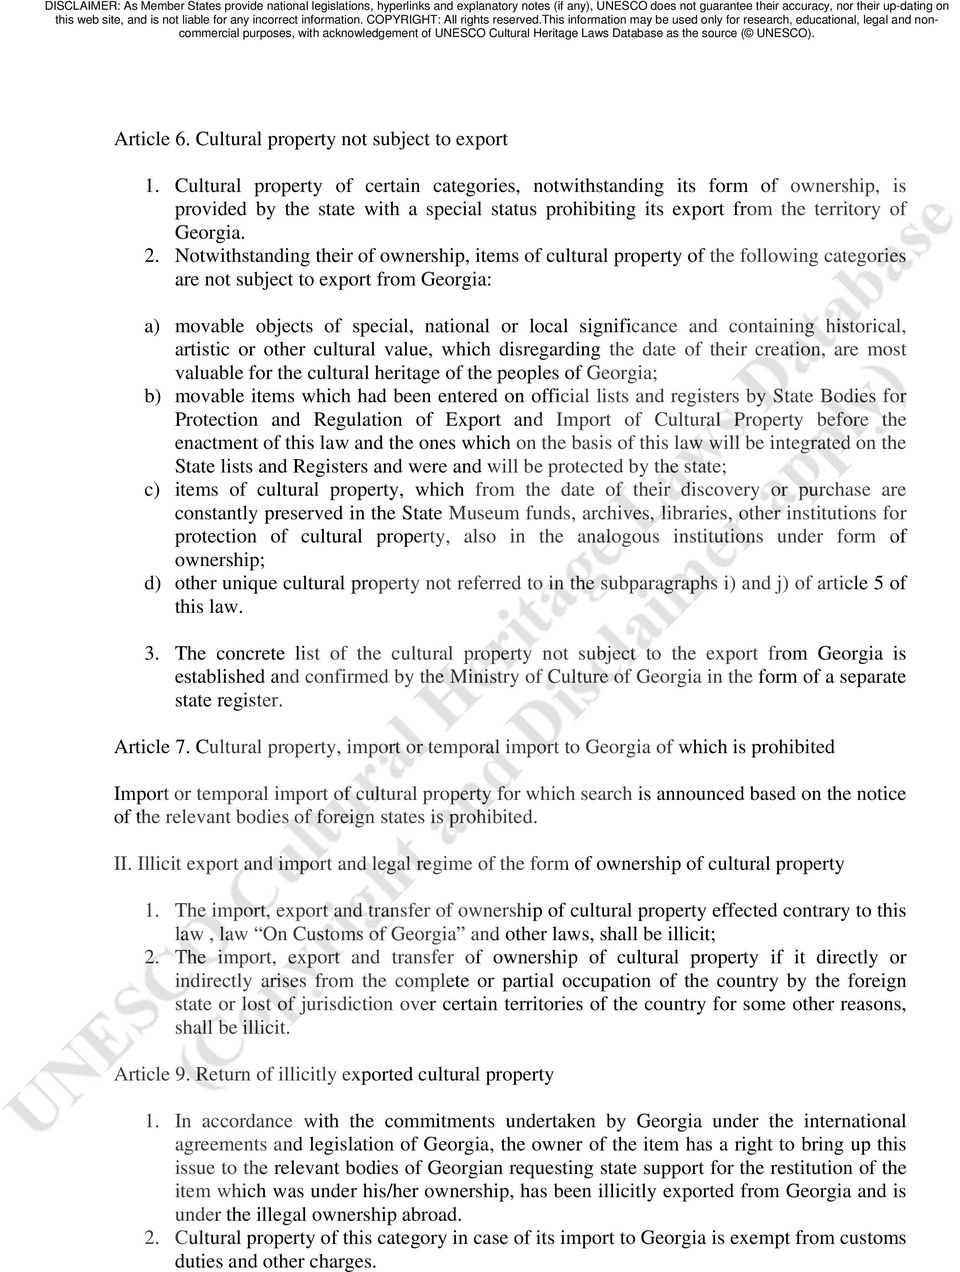 Notwithstanding their of ownership, items of cultural property of the following categories are not subject to export from Georgia: a) movable objects of special, national or local significance and